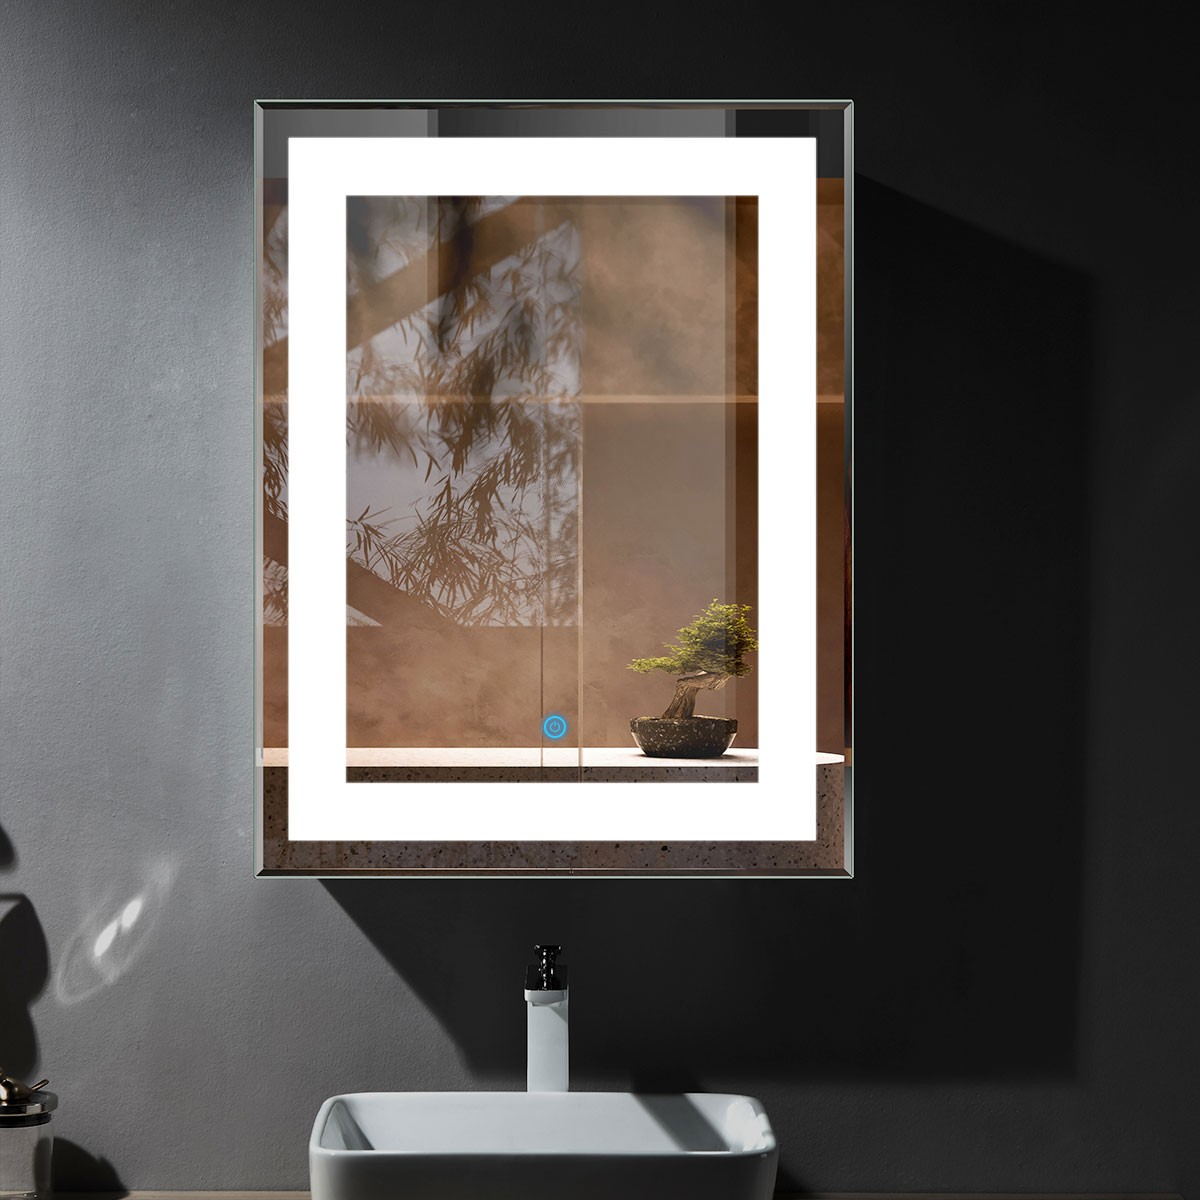 36 x 28 In Vertical LED Mirror, Touch Button (DK-OD-CK168-I)